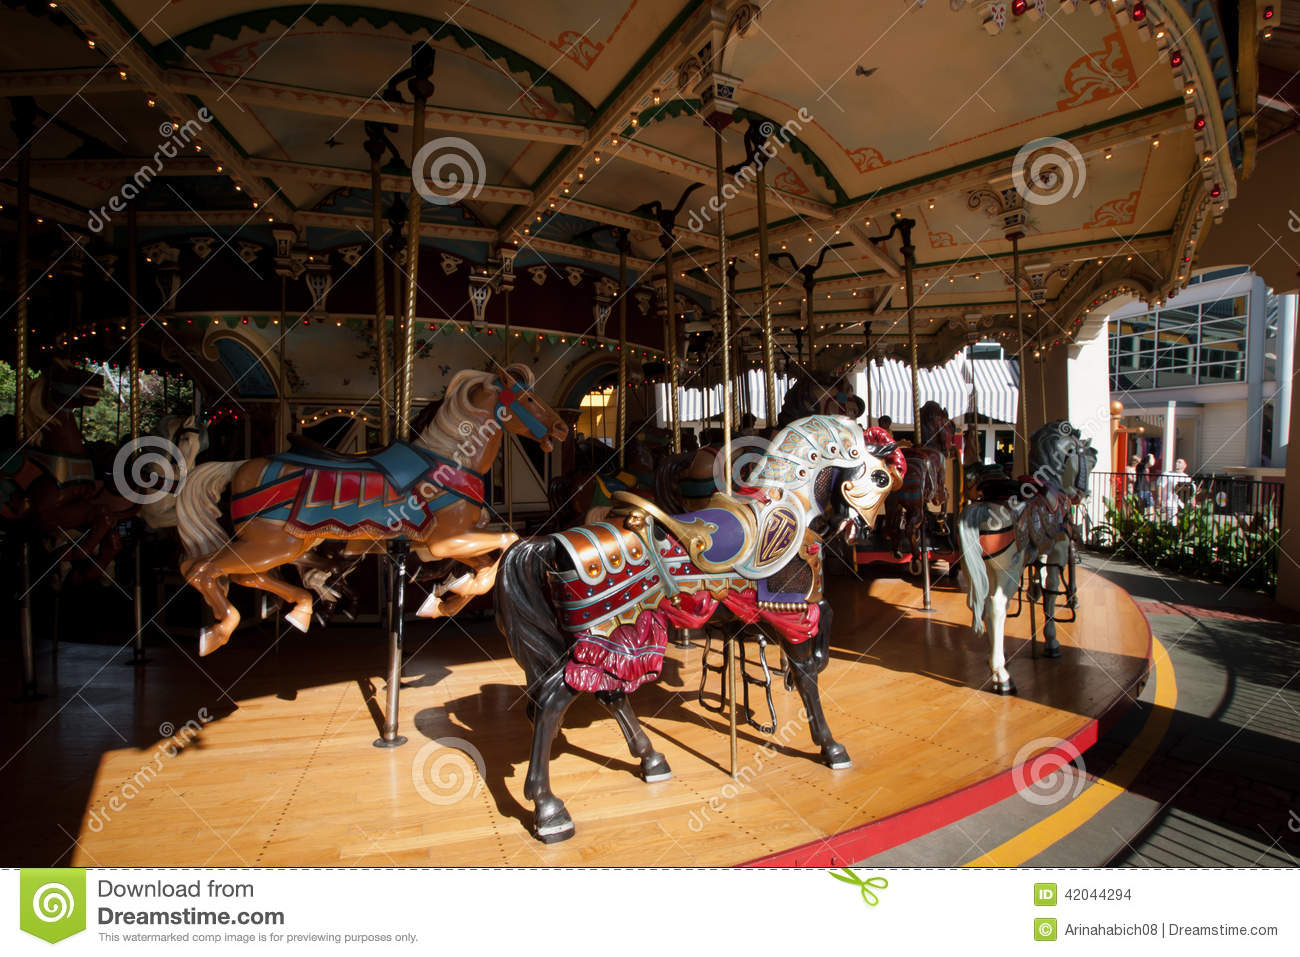 Old Carousel editorial stock image. Image of color, beautiful - 42044294